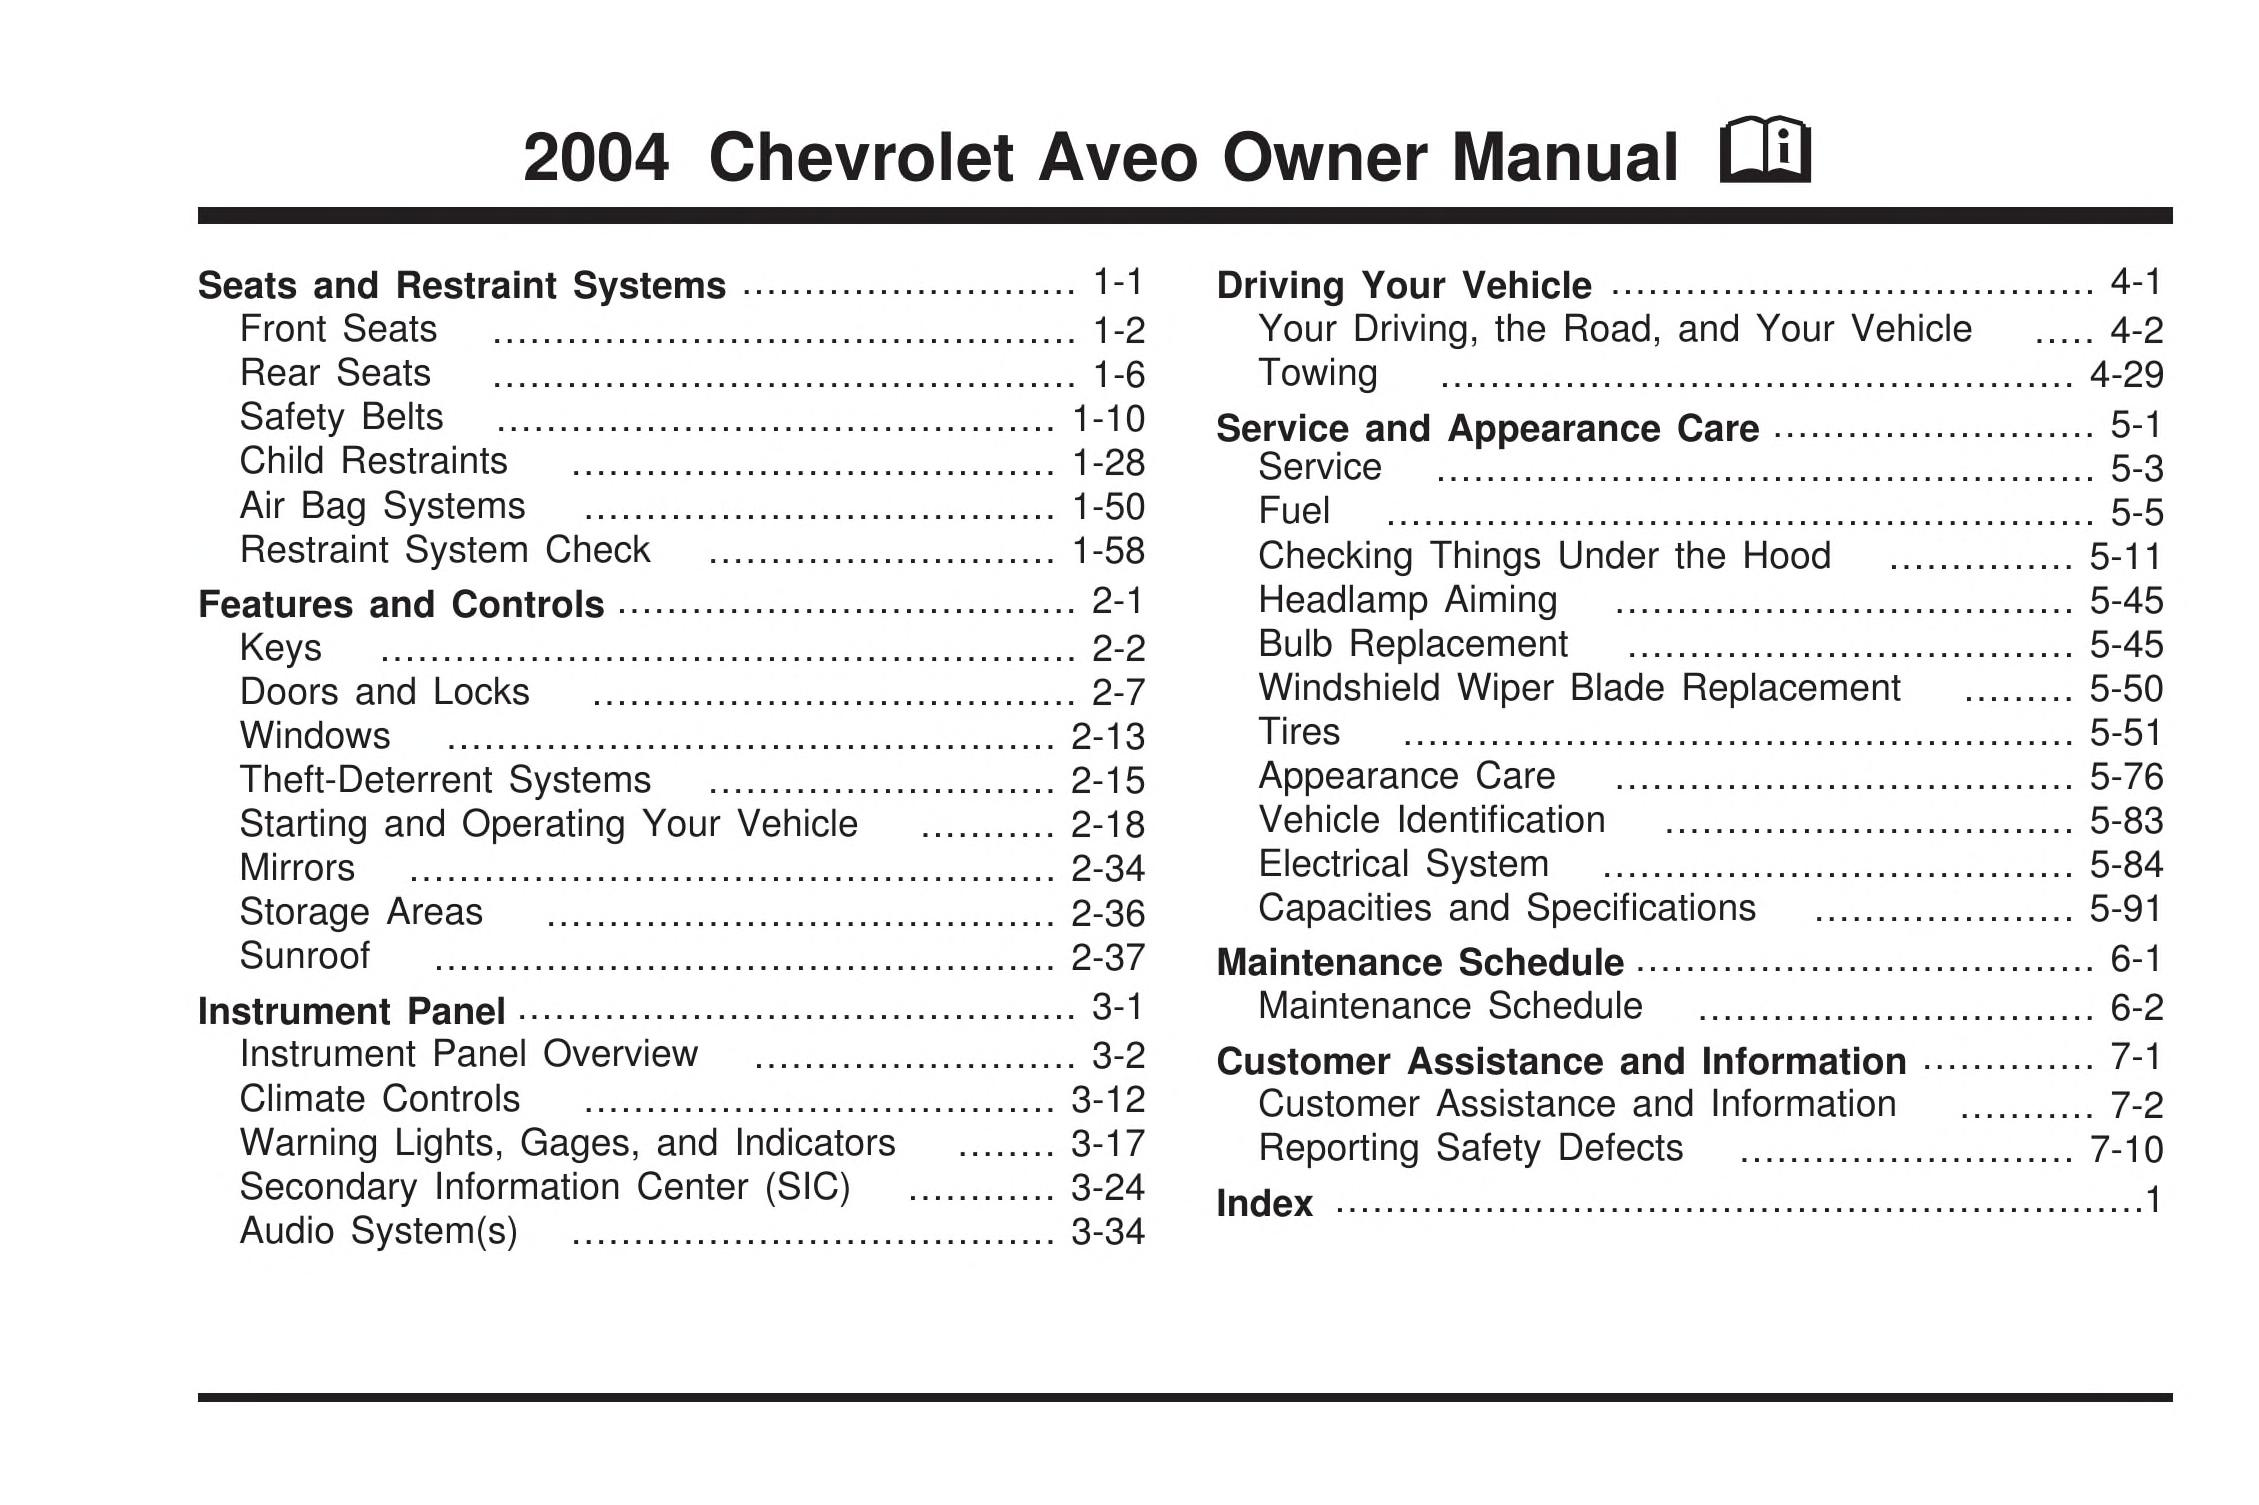 2004 Chevrolet Aveo Owner Manual General Motors Corp Free Download Borrow And Streaming Internet Archive